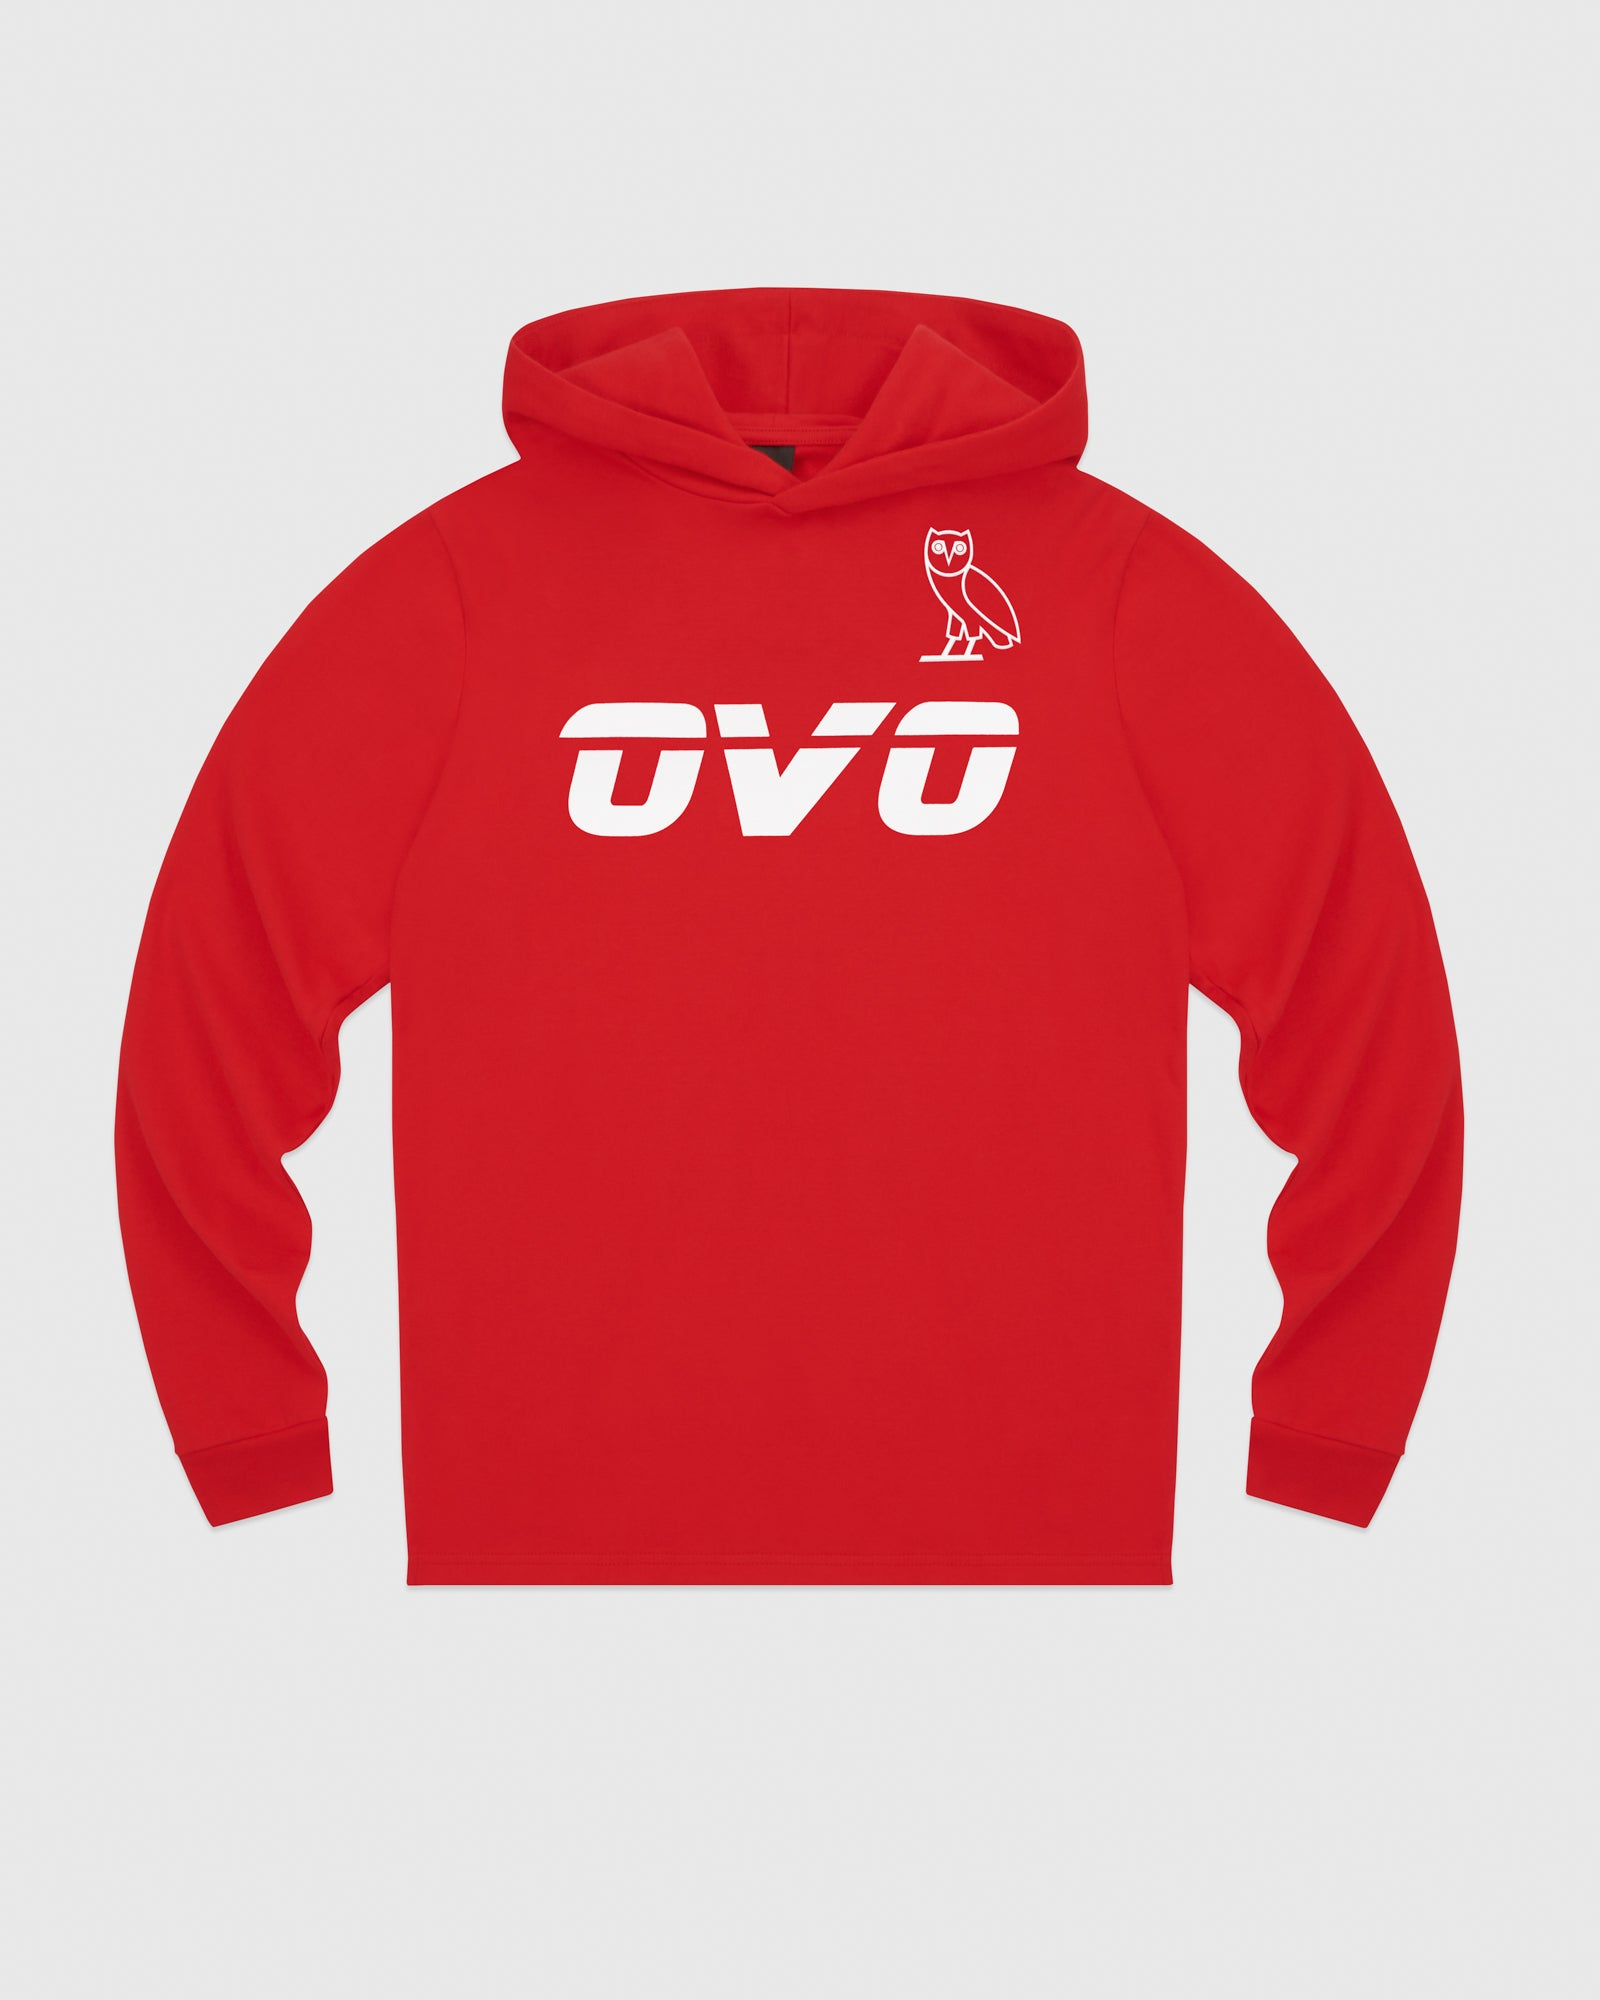 OVO RUNNER HEAVYWEIGHT JERSEY HOODIE - RED